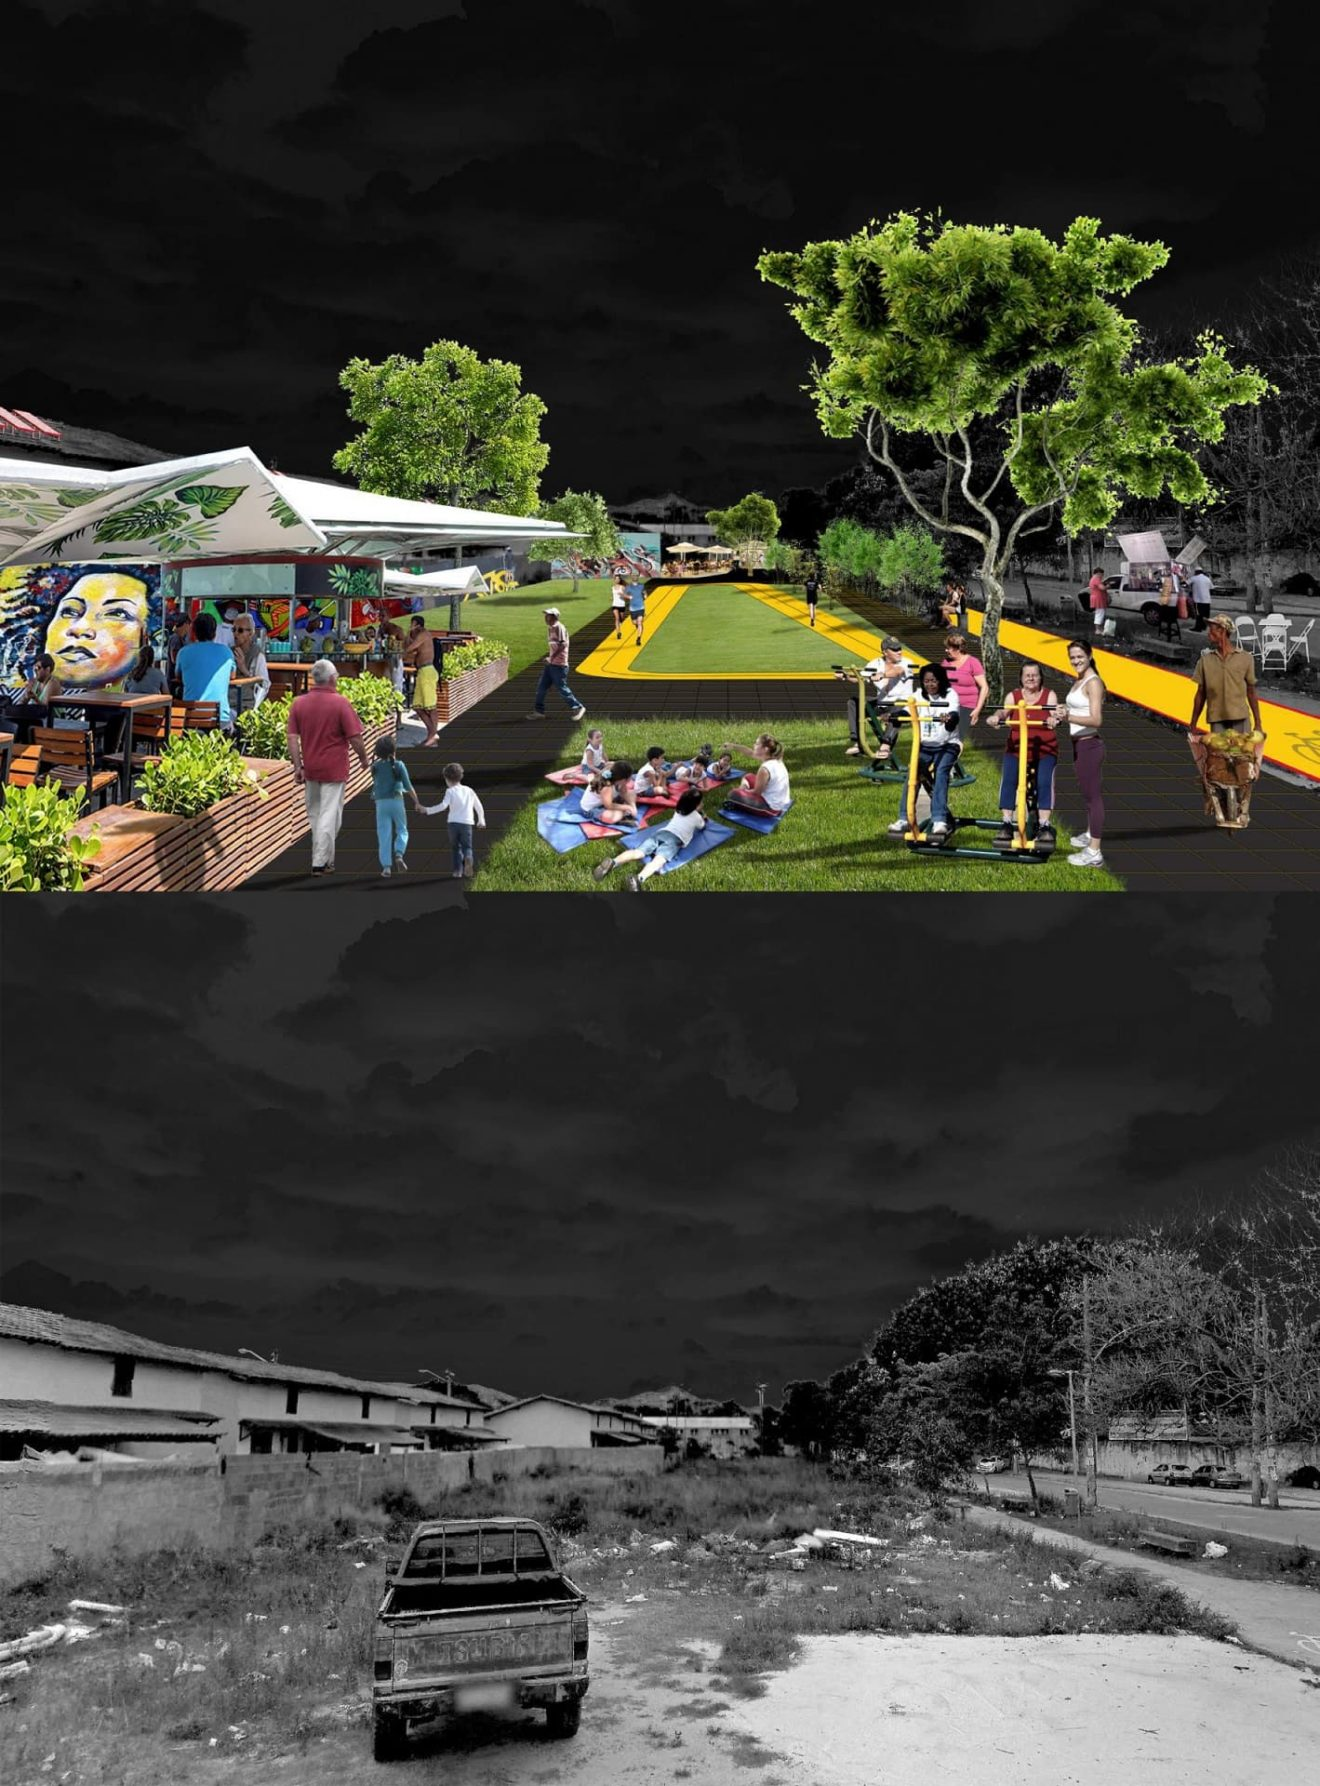 Adaptation of undeveloped plots into public spaces that increase social interaction and attract commercial activities.